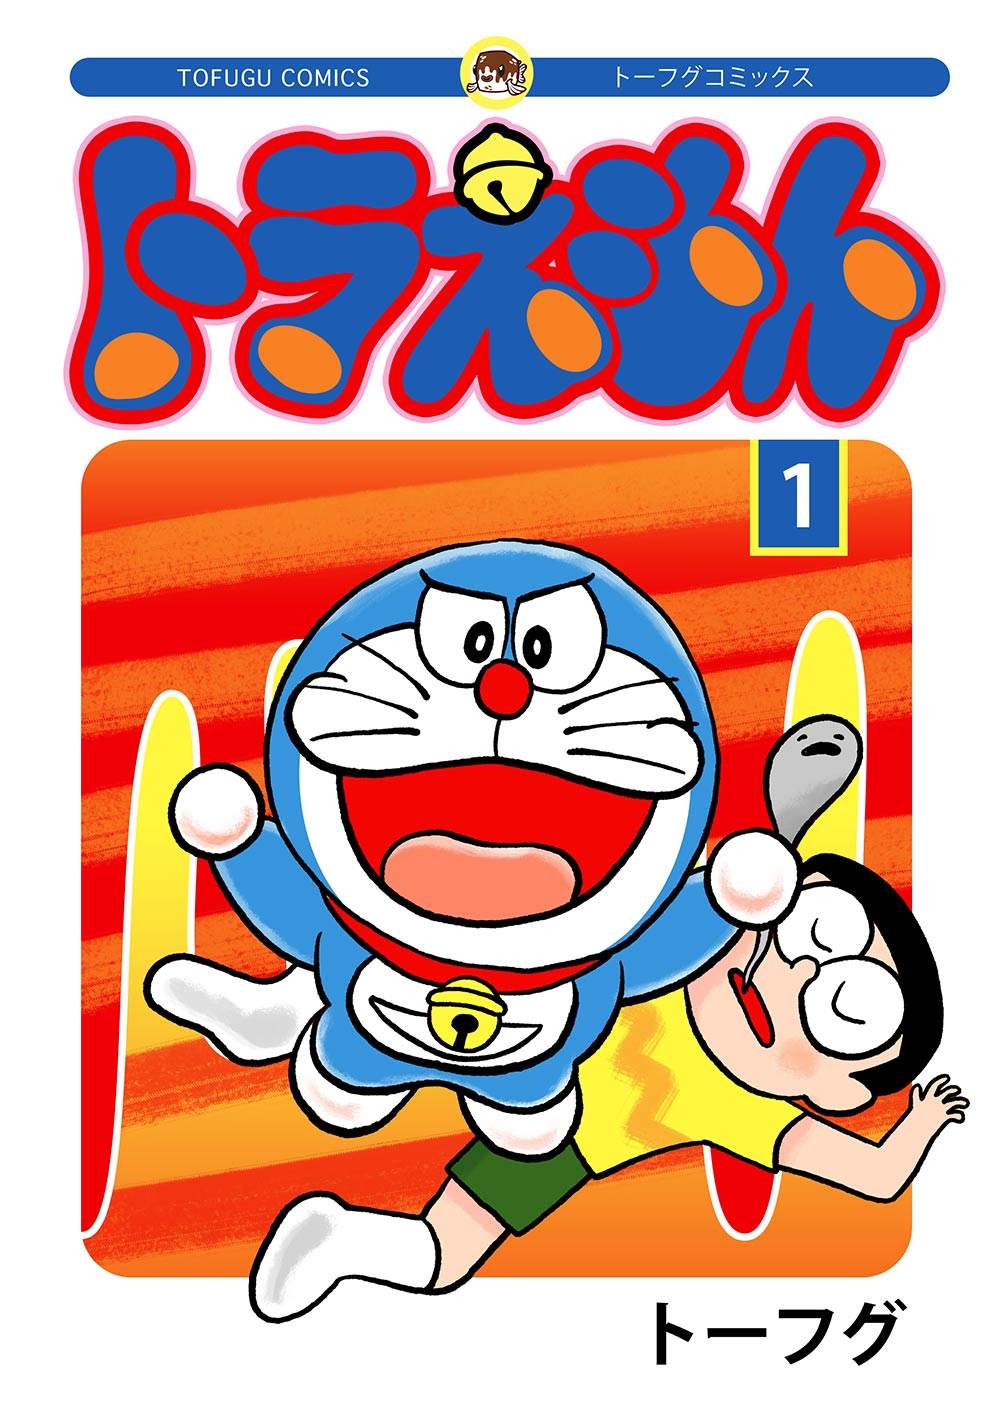 doujinshi cover of doraemon standing over dead nobita